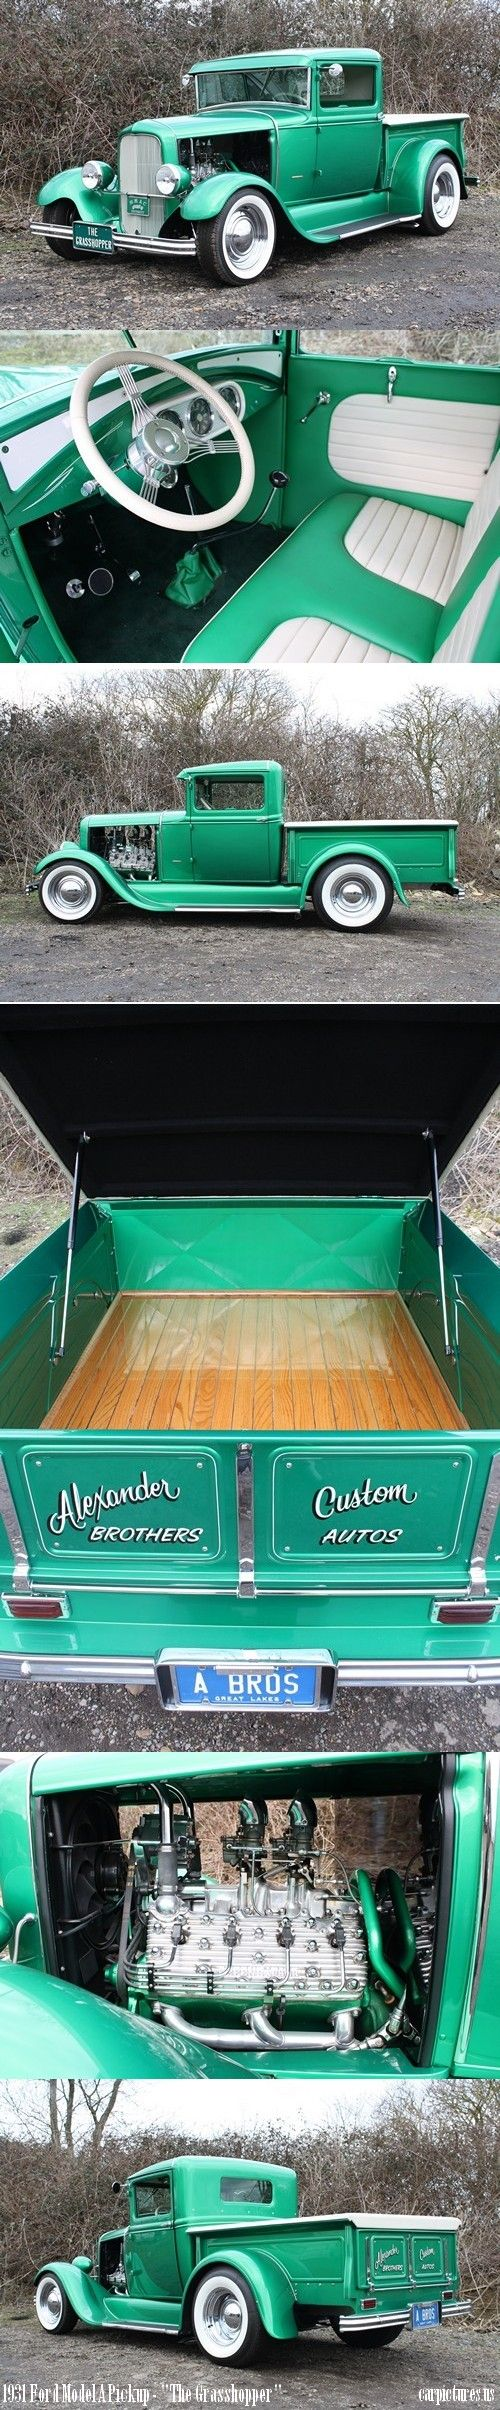 """1931 Ford Model A Custom Pickup –""""The Grasshopper""""  SealingAndExpungements.com 888-9-EXPUNGE (888-939-7864) Free evaluations, with easy payment terms. SEALING PAST MISTAKES.  OPENING FUTURE OPPORTUNITIES."""